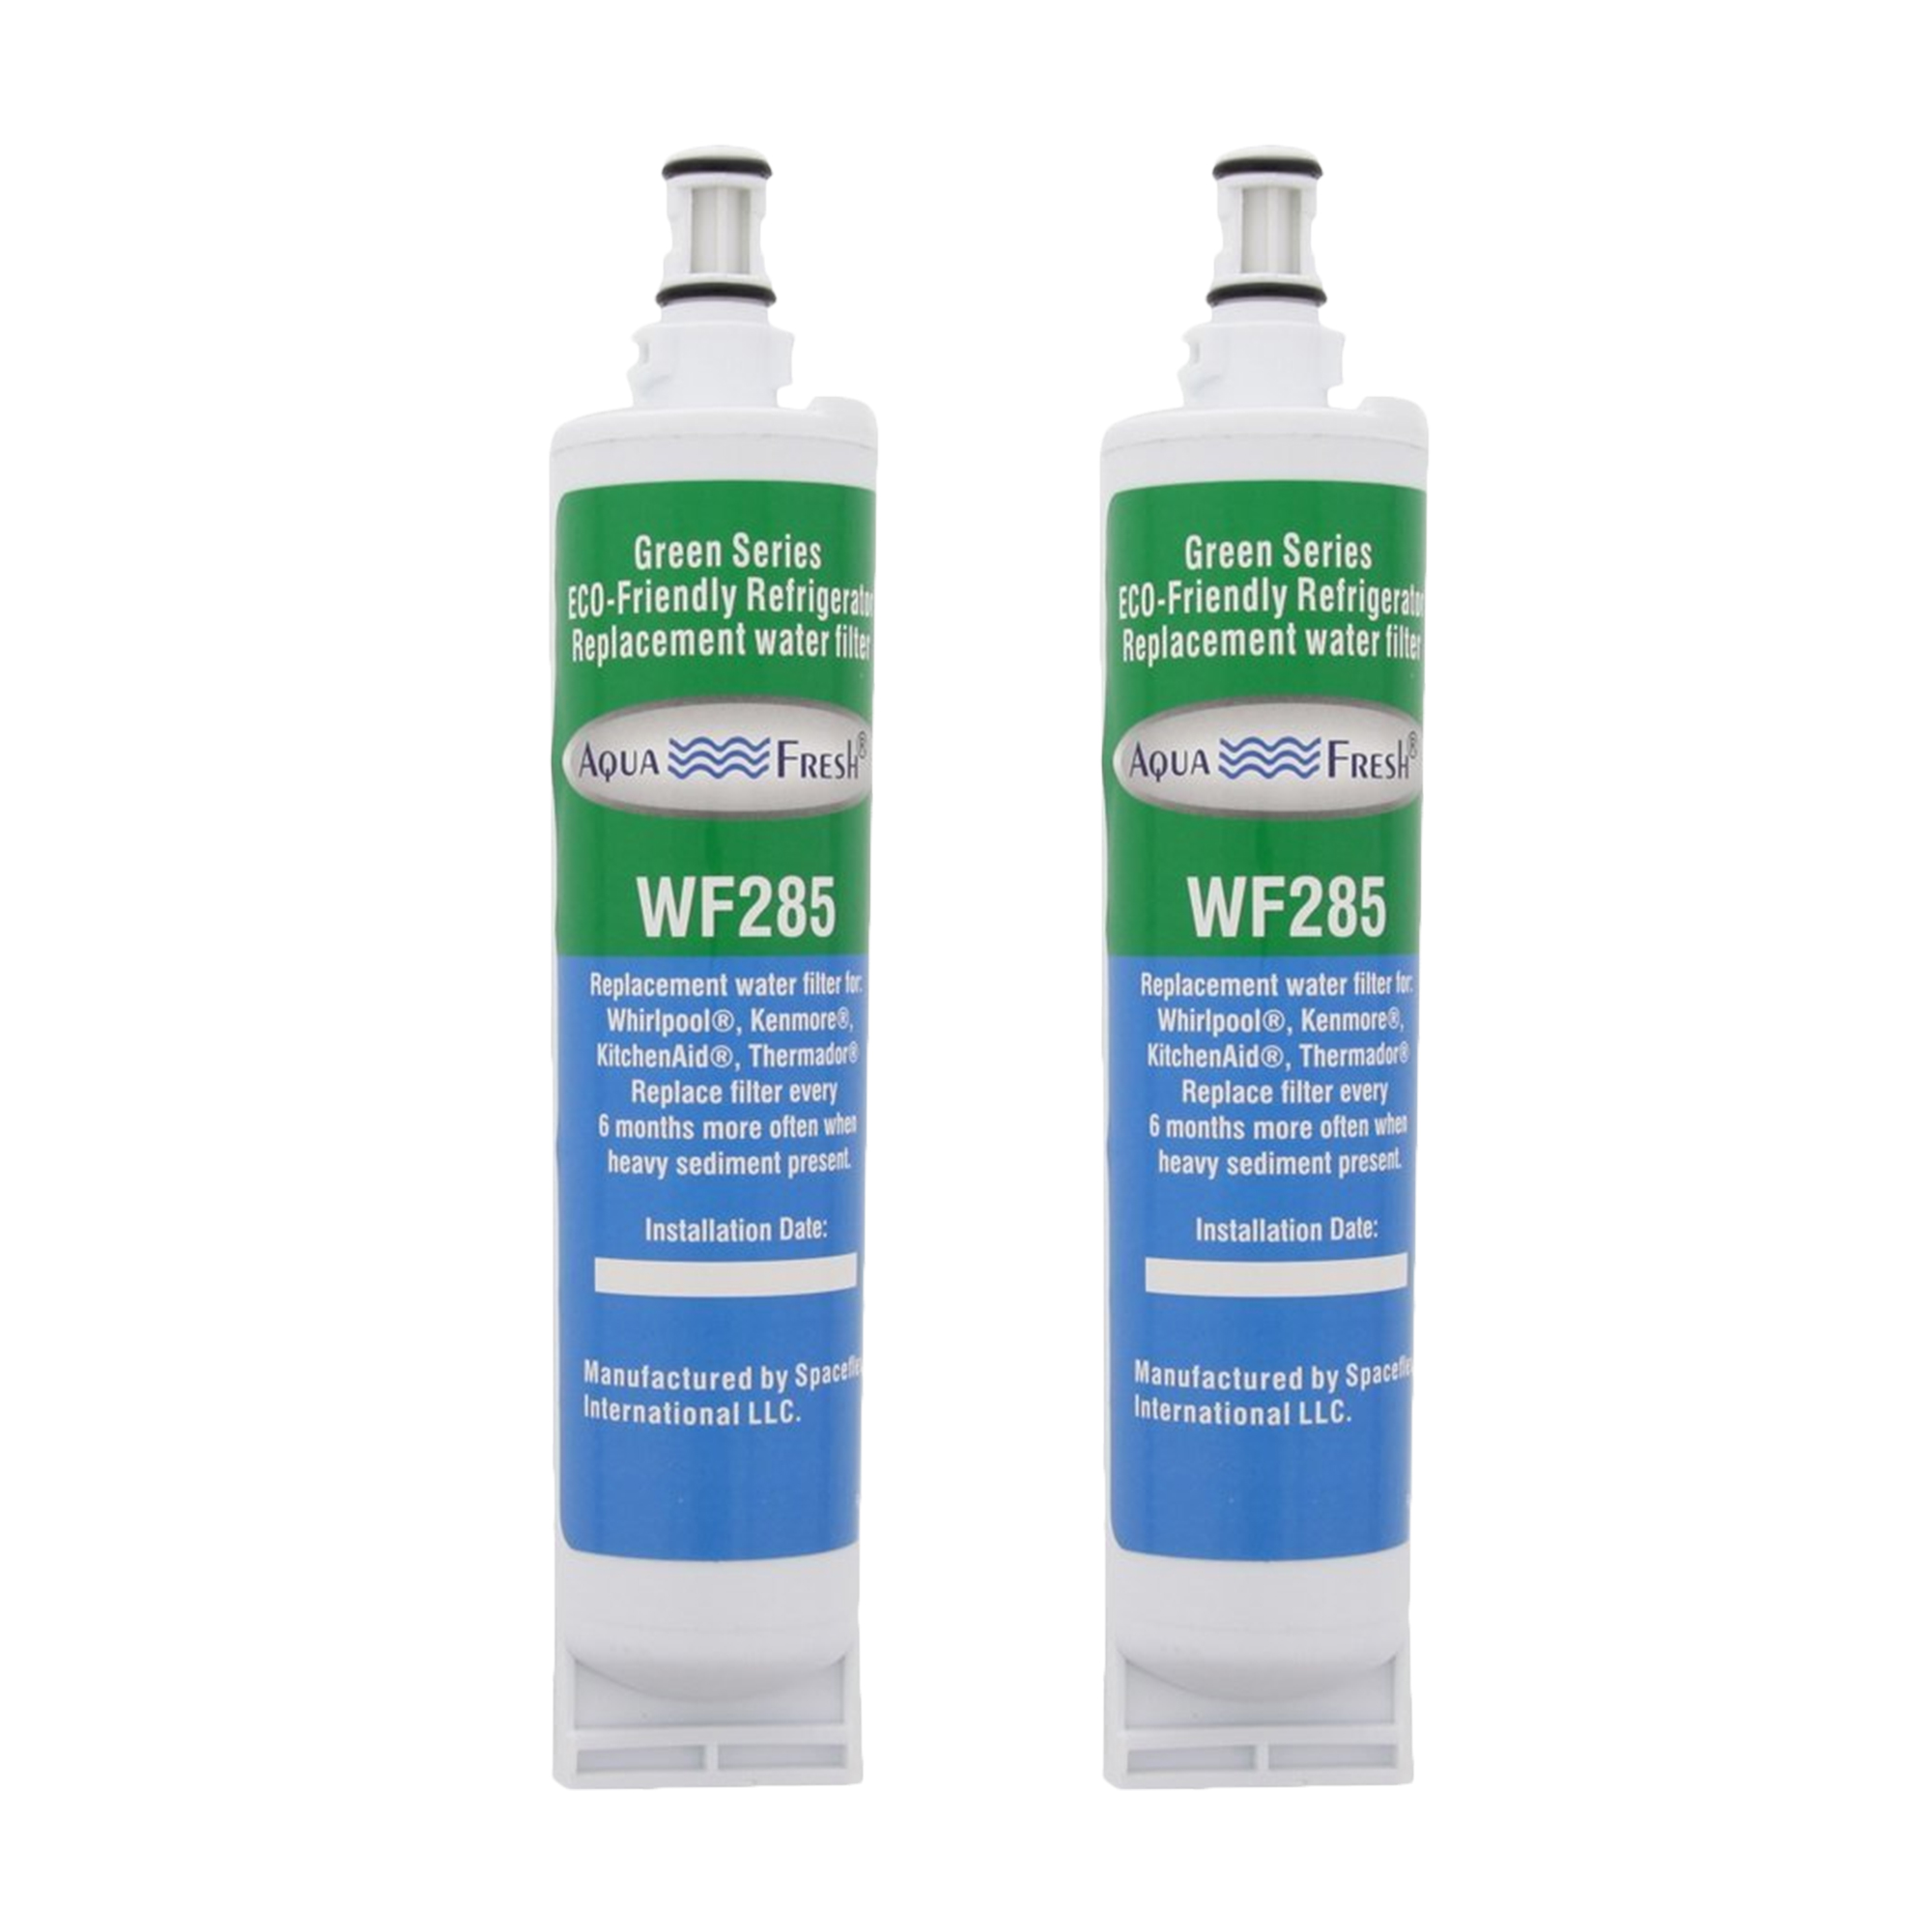 Replacement Water Filter For Kenmore 9010 Refrigerator Water Filter by Aqua Fresh (2 Pack)